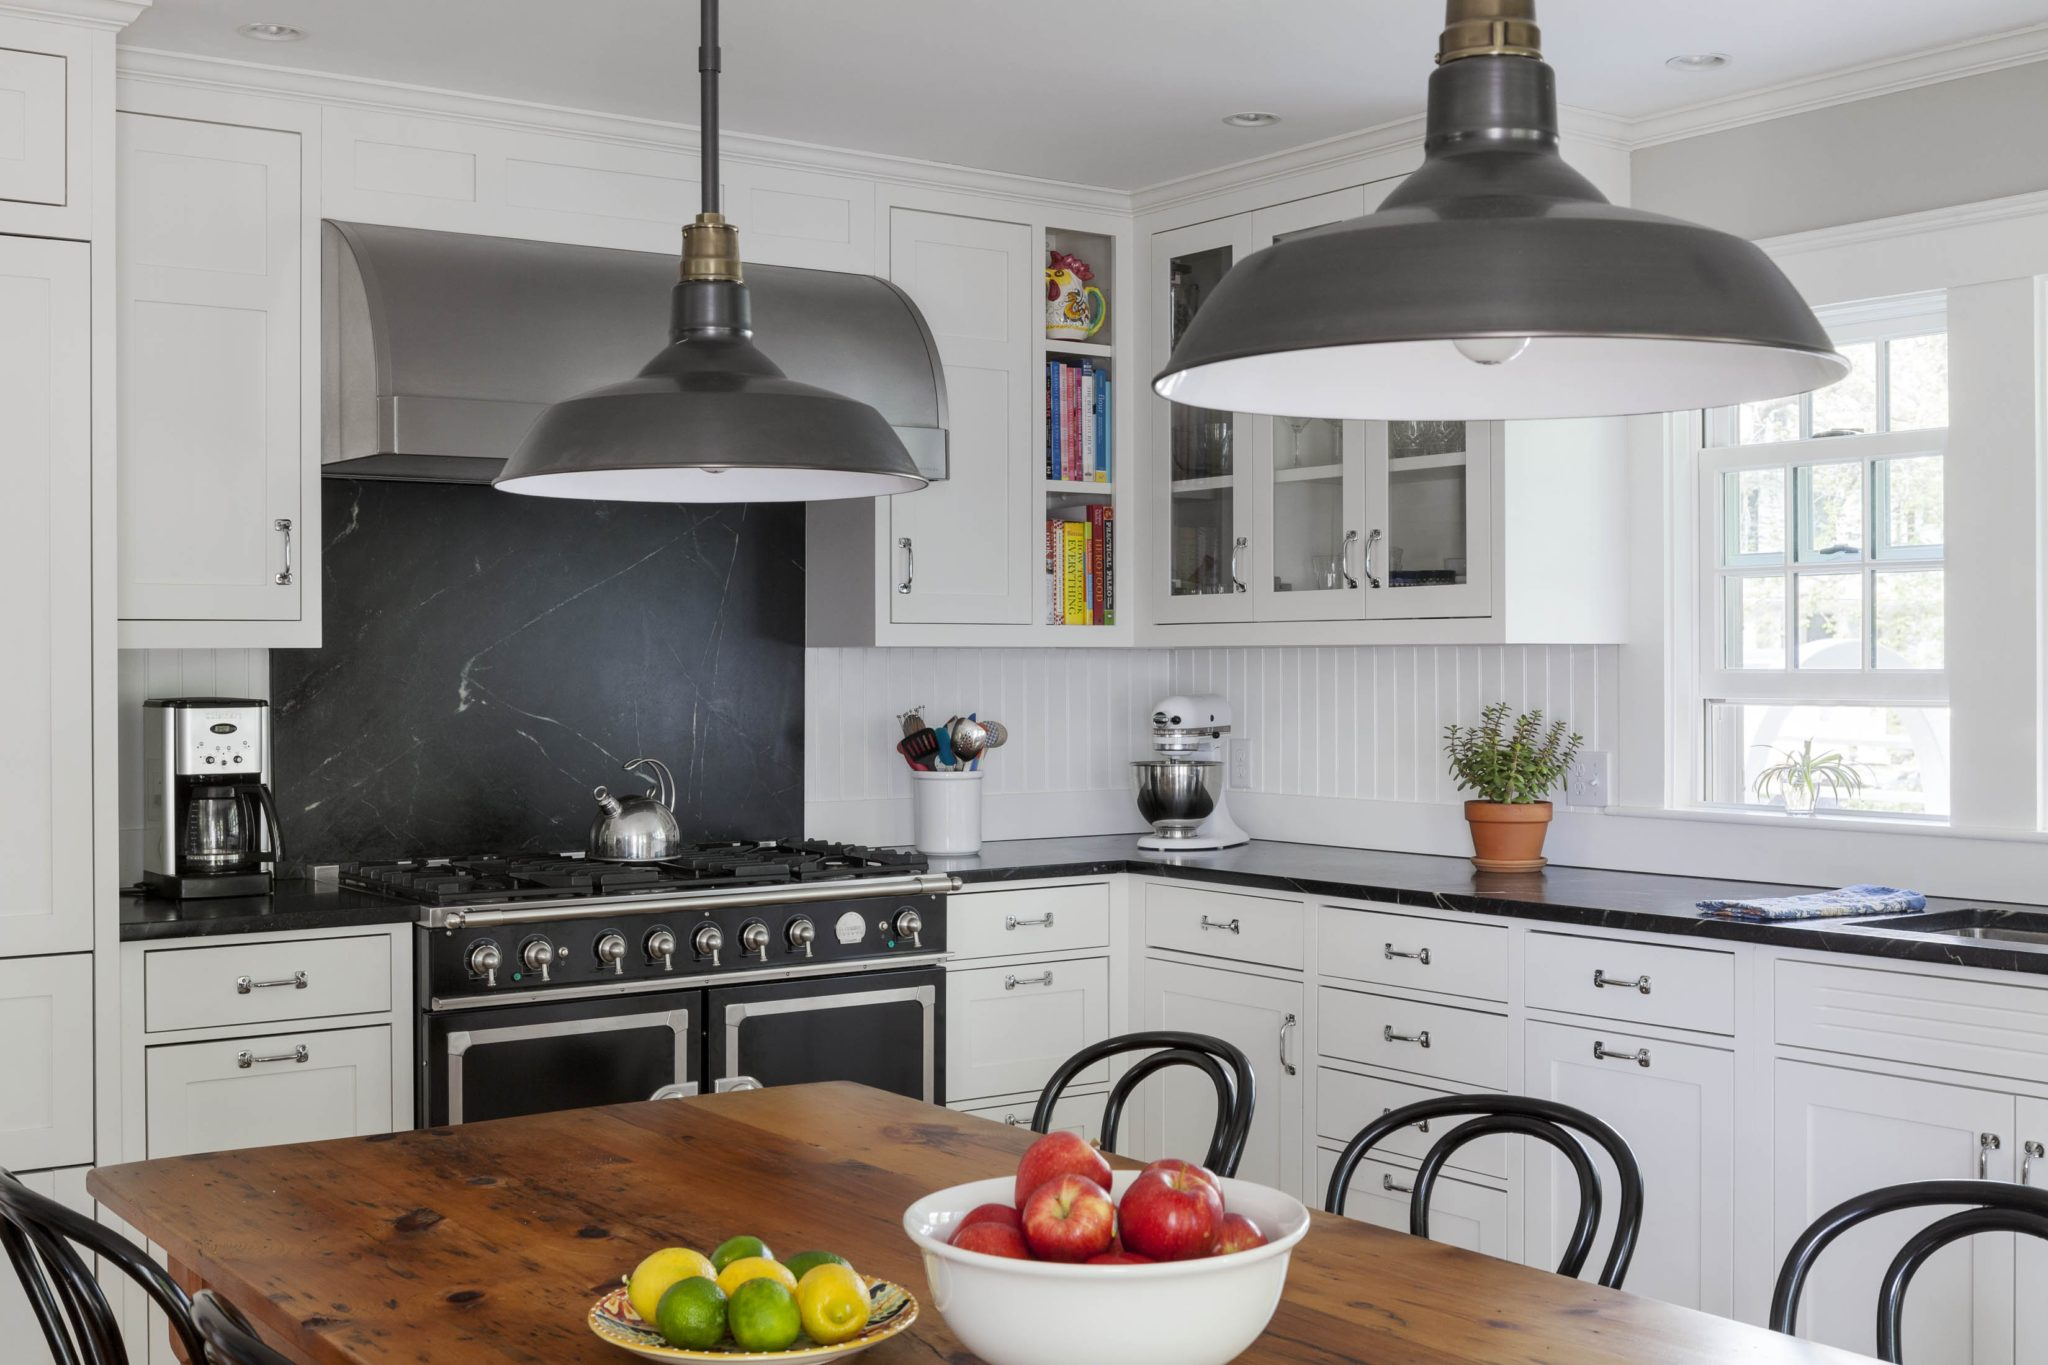 Black and white kitchen with soapstone backsplash by Jeanne Finnerty